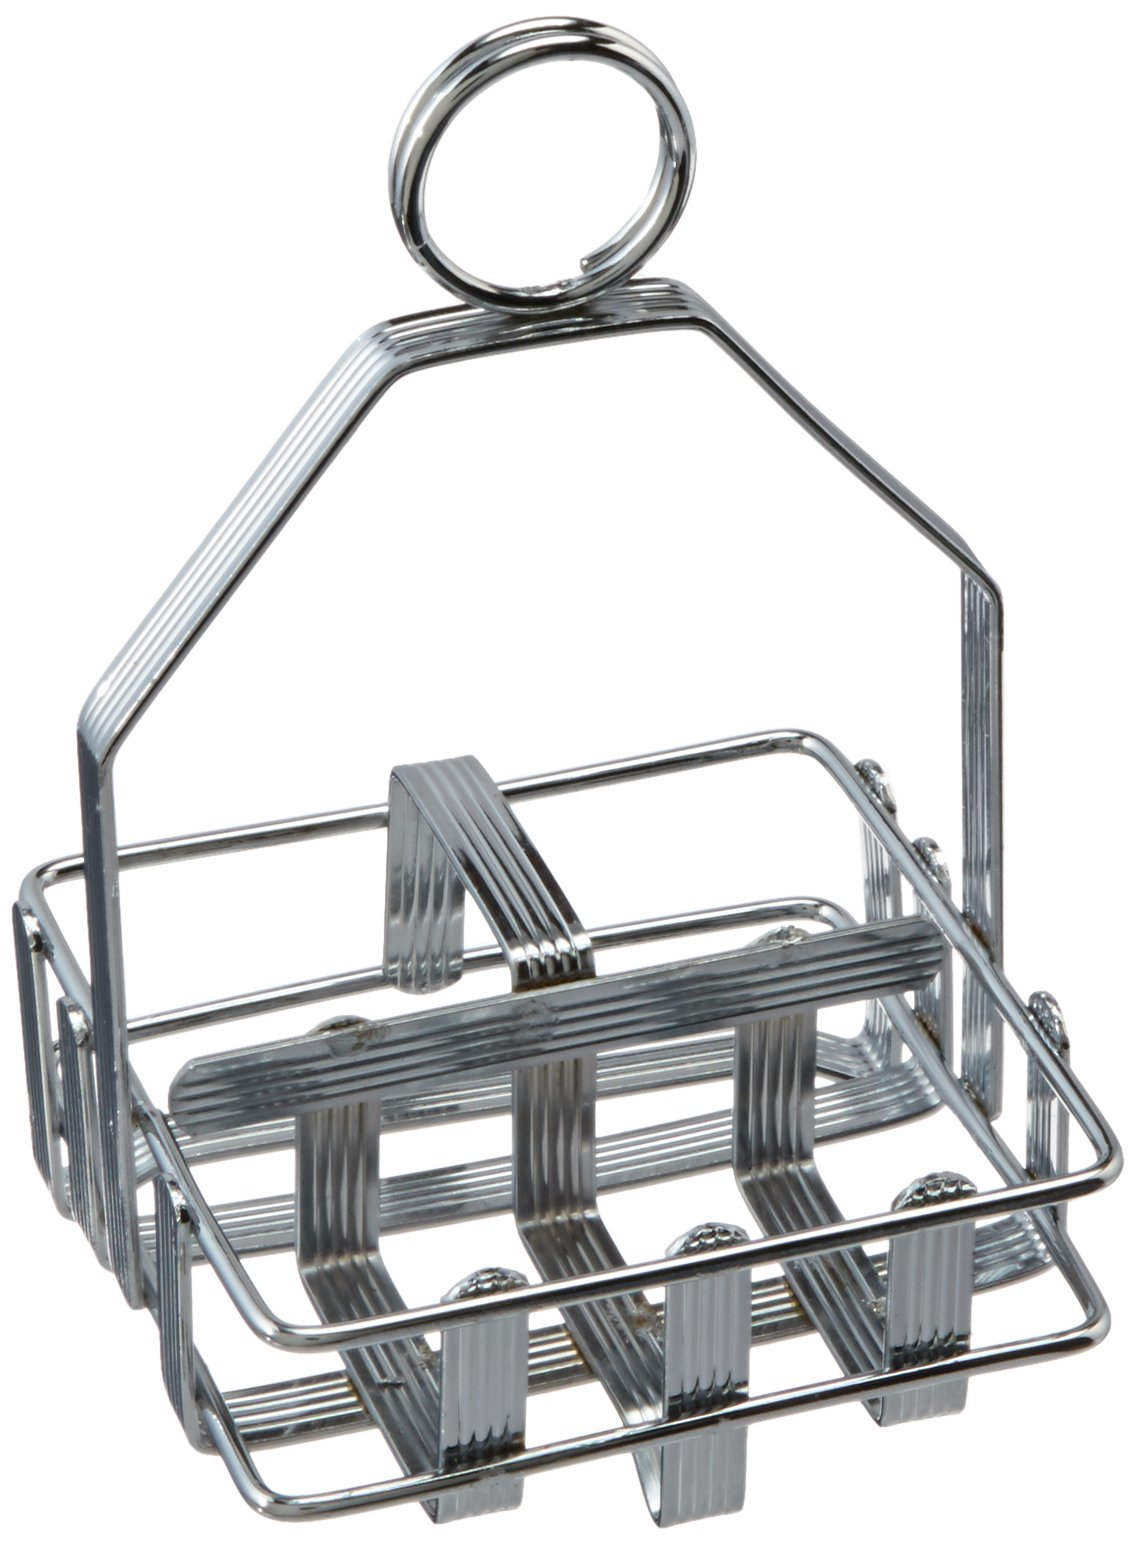 Winco WH-7 Shaker and Packet Holder, Chrome Plated by Winco (Image #1)